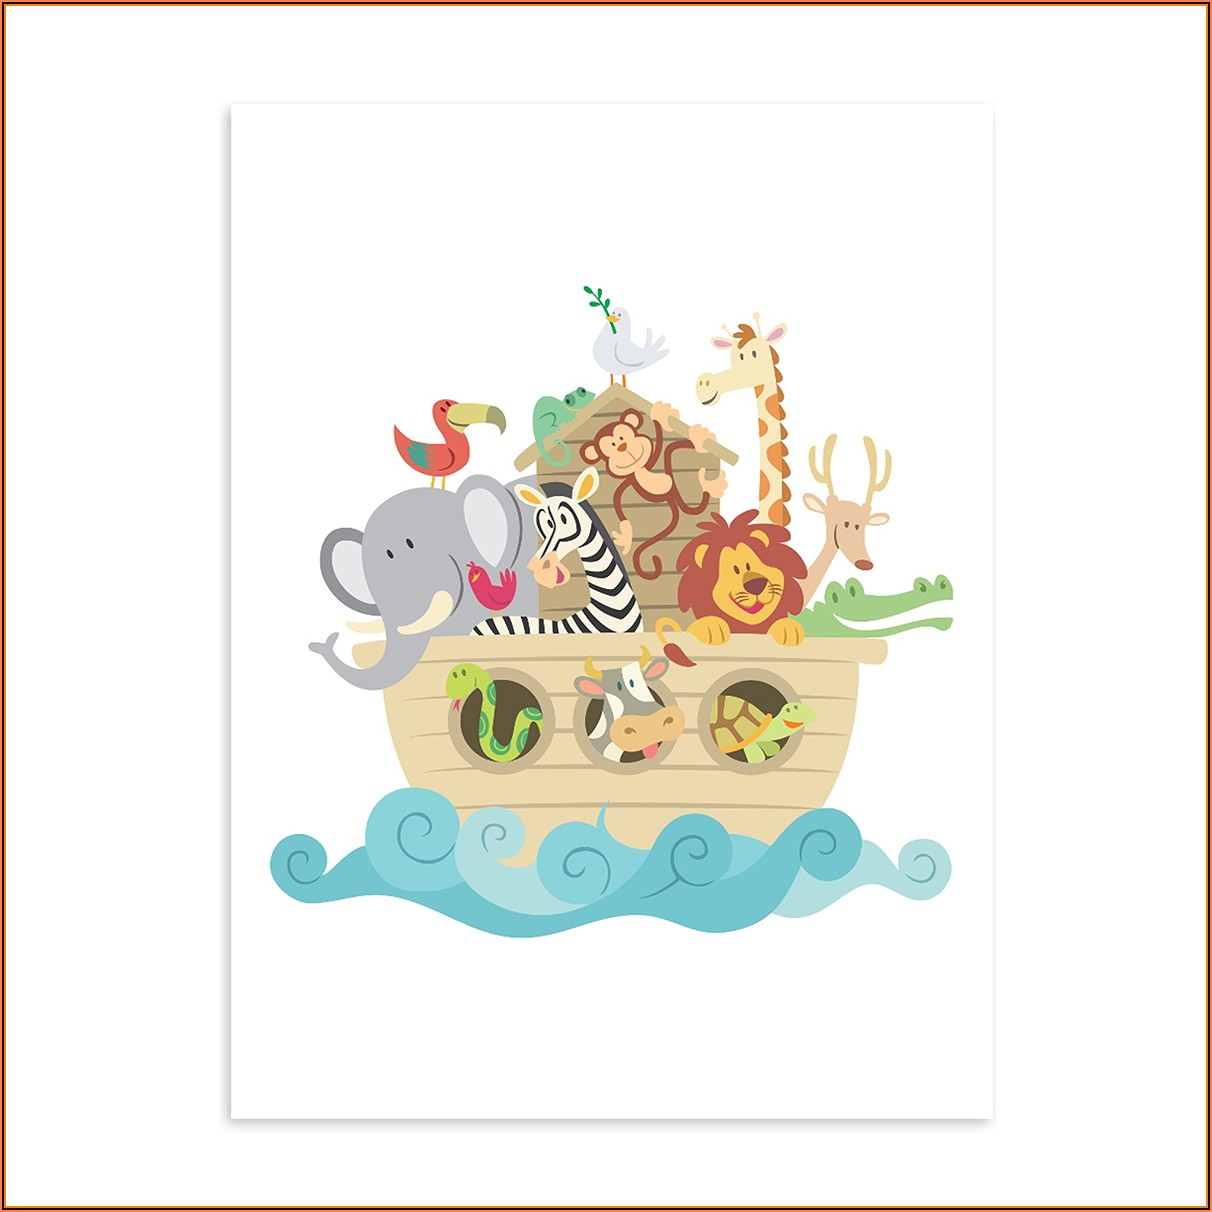 Kinderposter Tiere